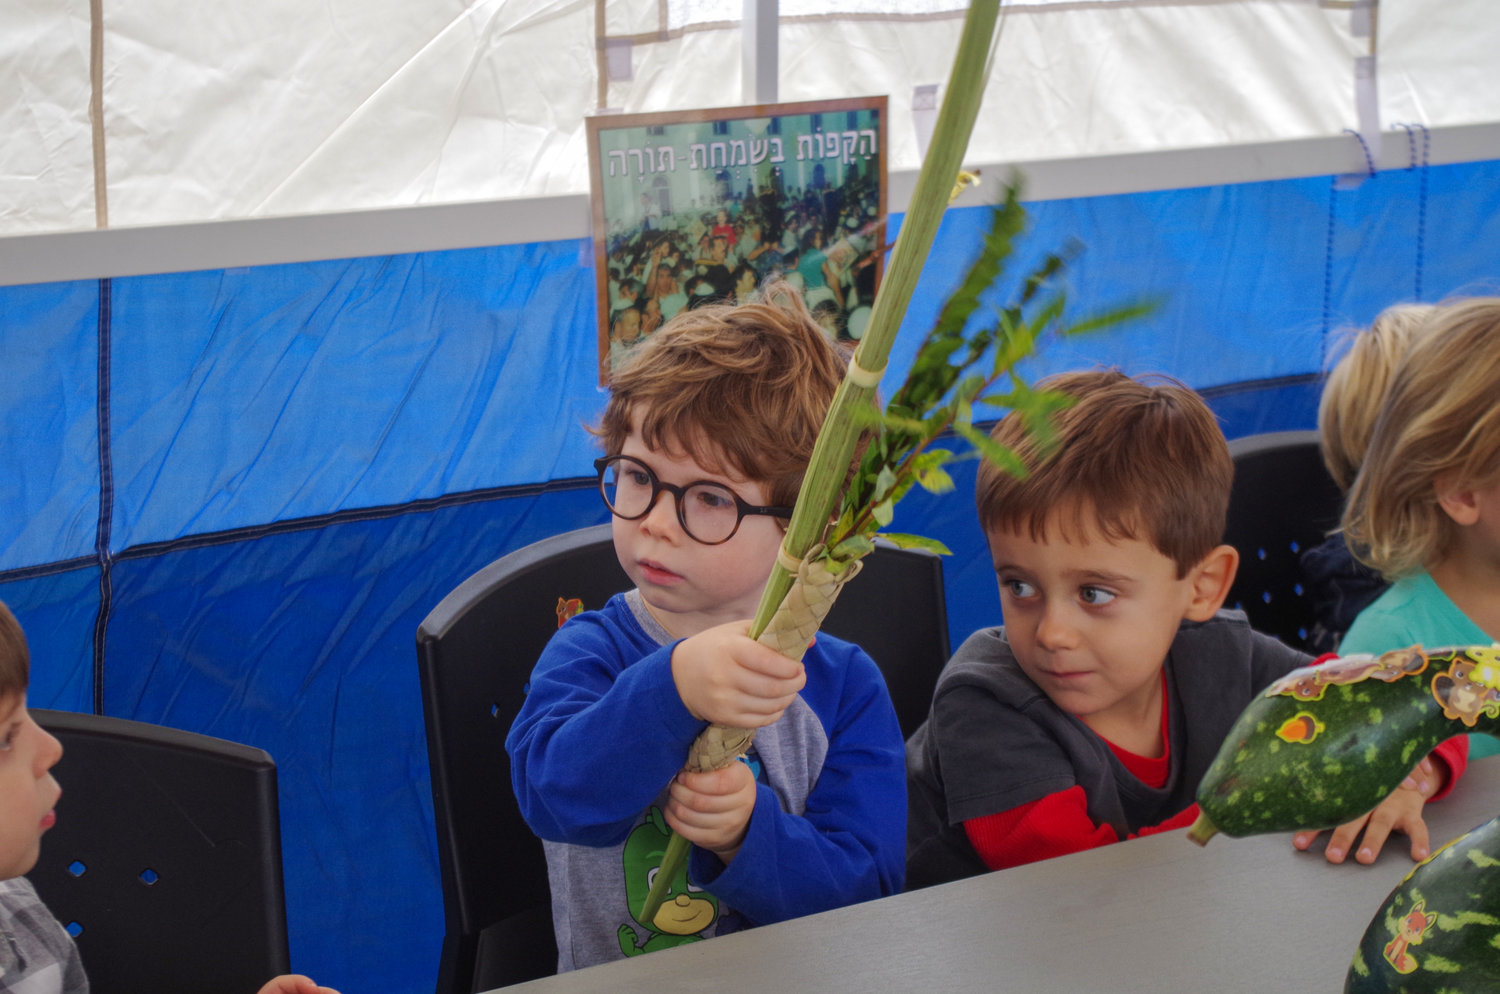 Children from the David C. Isenberg Early Childhood Center at the Dwares Jewish Community Center in Providence had an opportunity to shake the lulav during their visit to the sukkah.